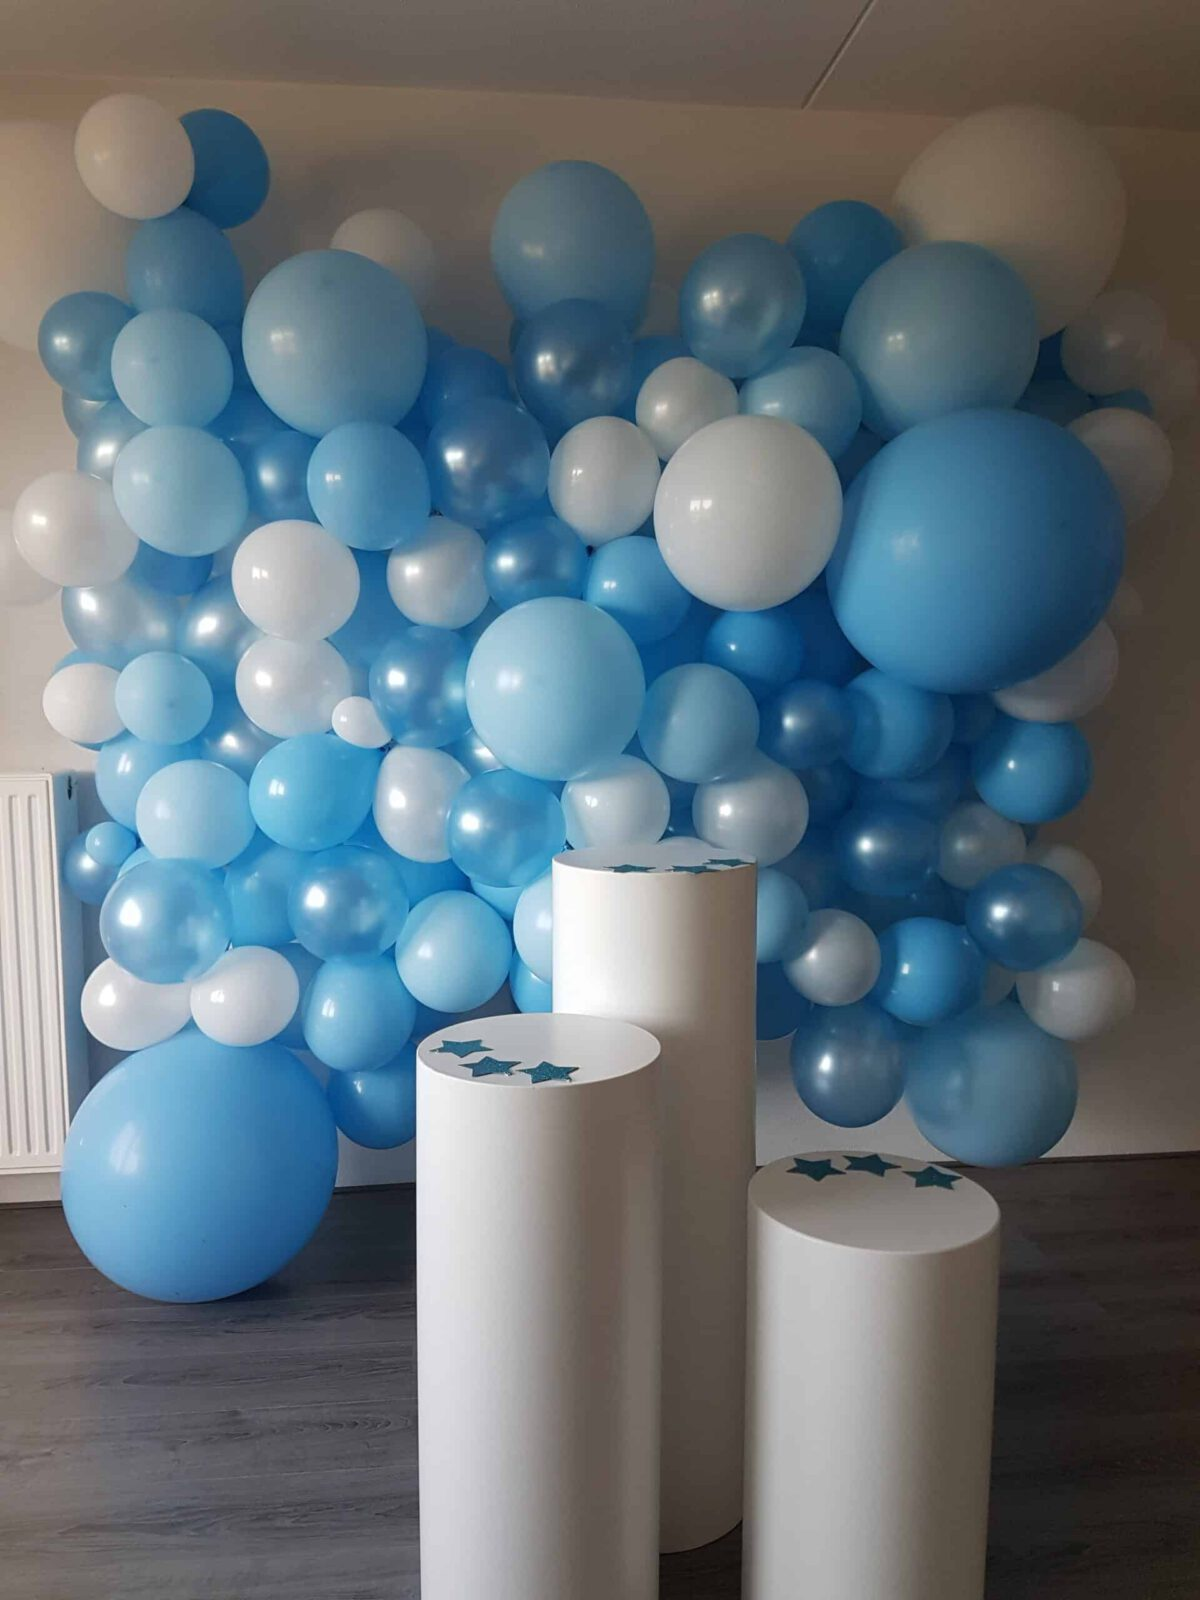 20190921 112934 scaled e1603971440322 - Ballondecoraties op maat